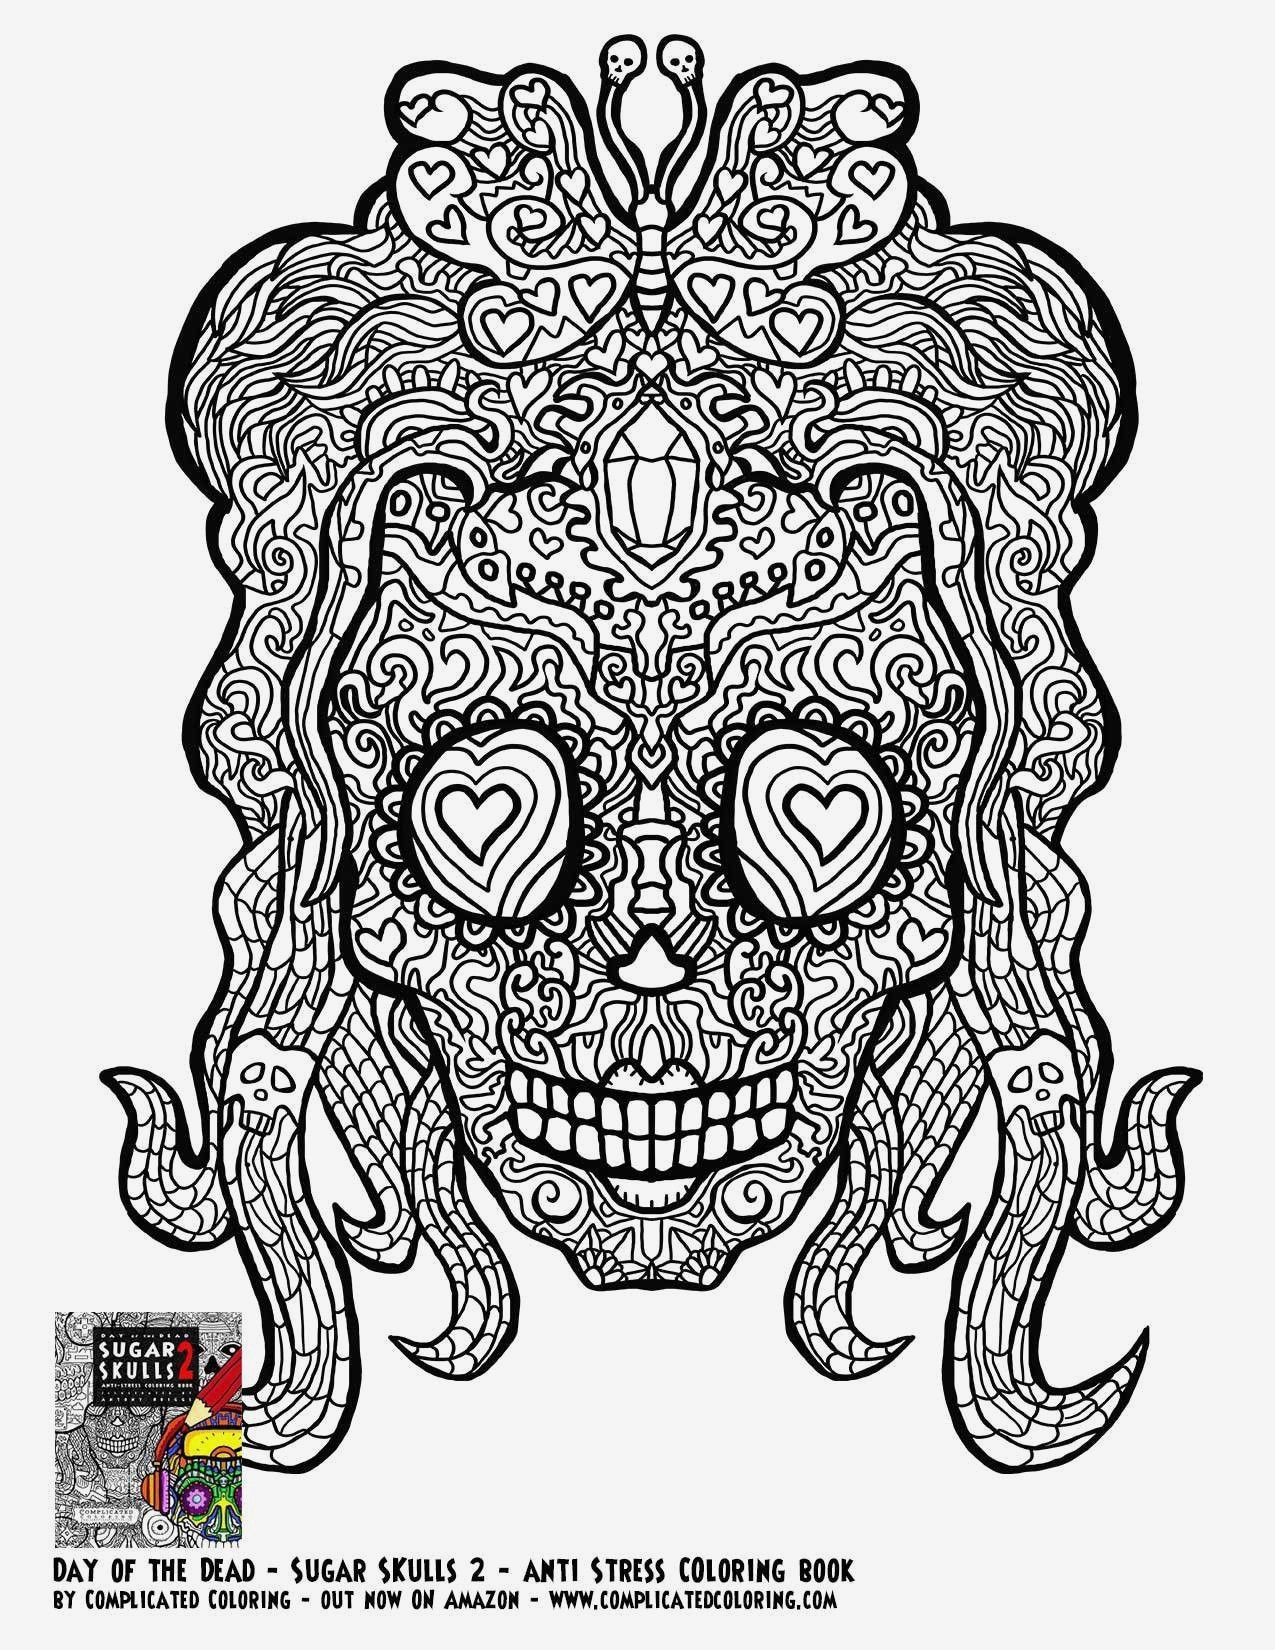 flowers with free delivery and free vase of free flower coloring pages the first ever custom cool vases flower pertaining to free flower coloring pages the best ever free adult coloring pages lovely vases flowers in vase